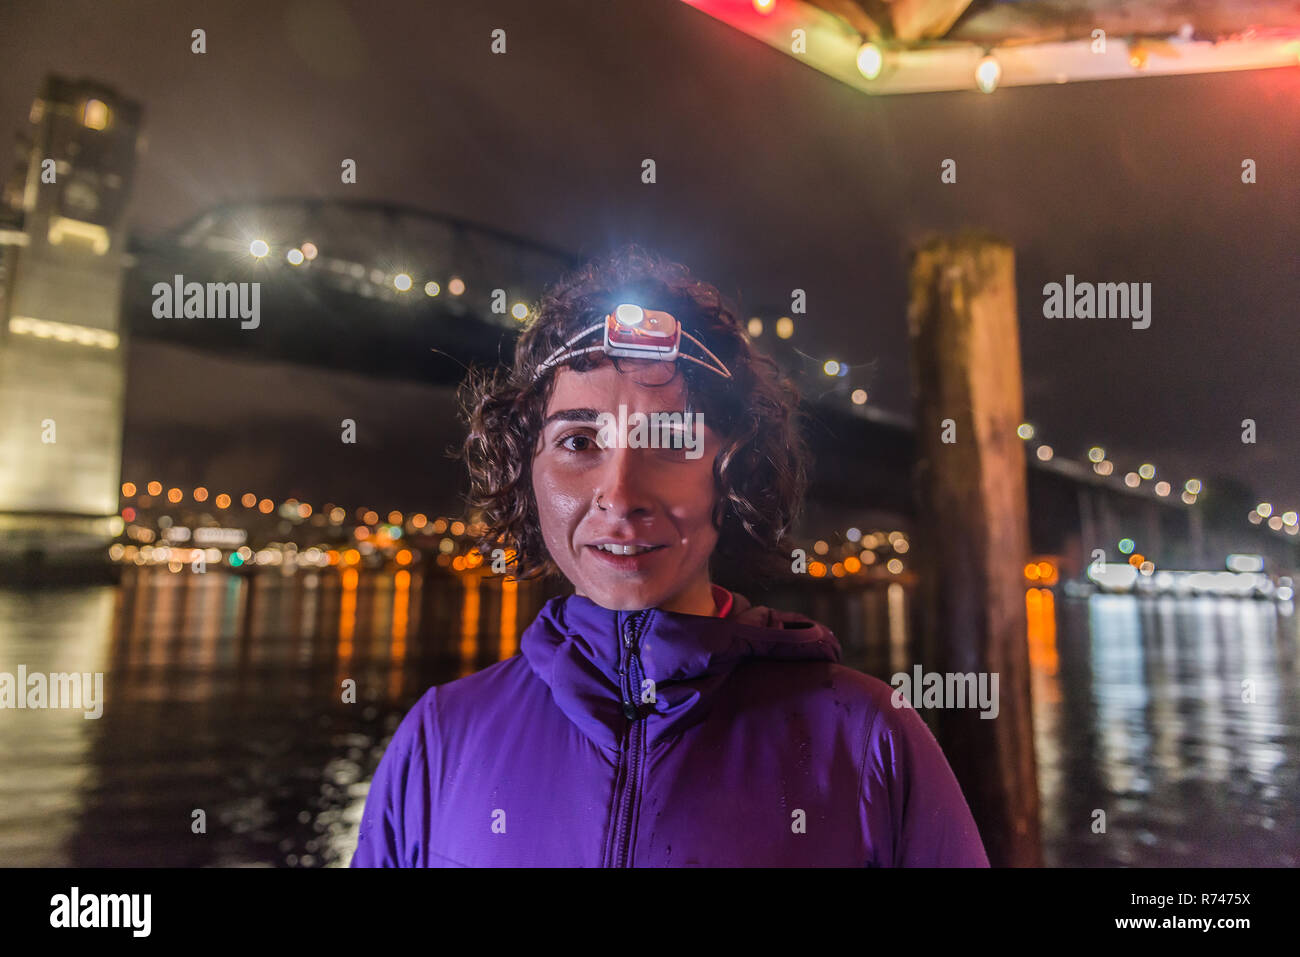 Runner with headlamp in urban North Vancouver, Canada - Stock Image